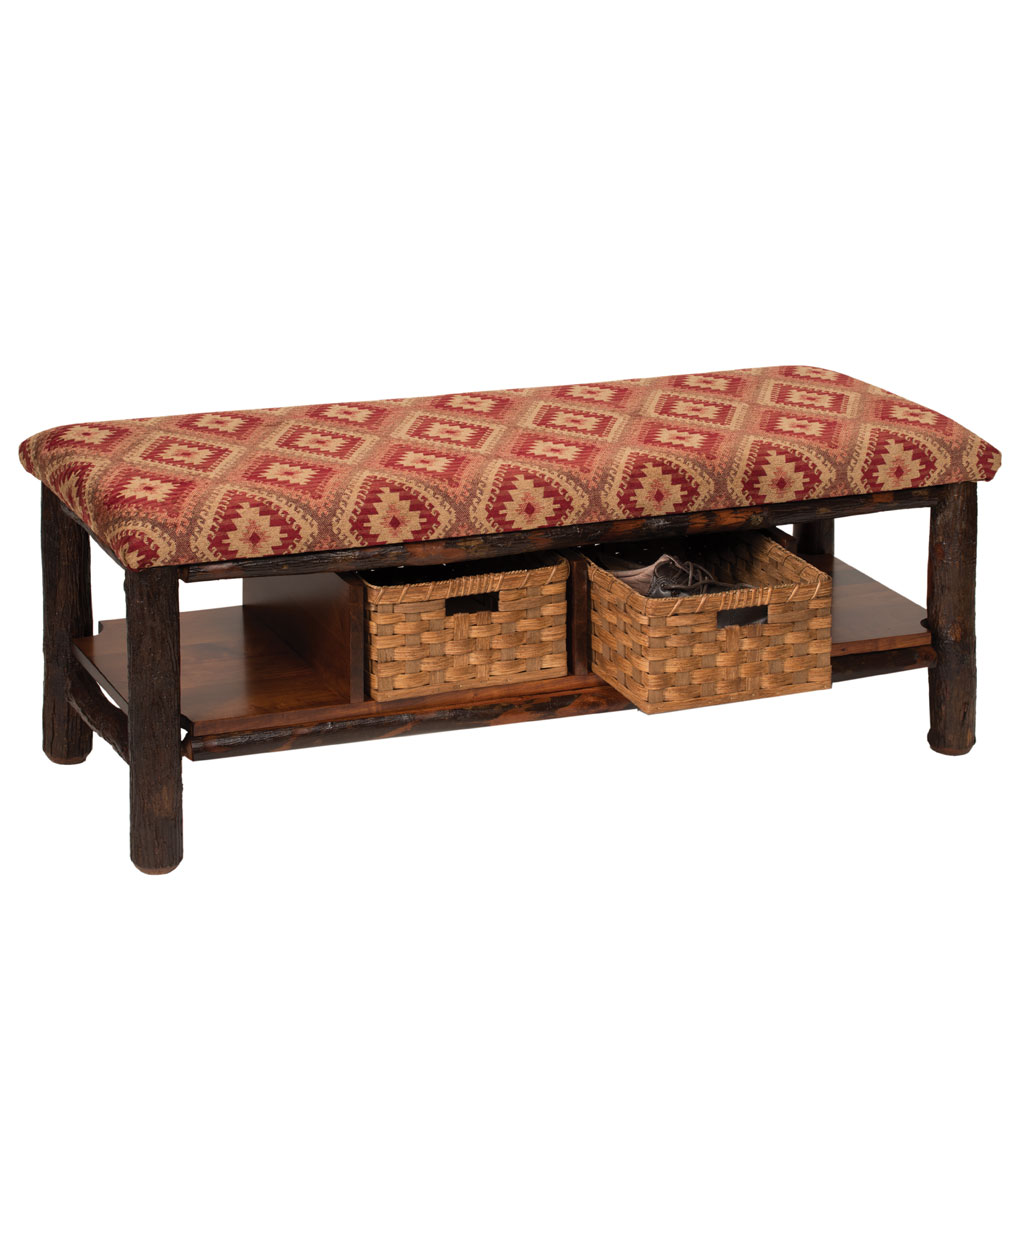 Hickory Log Bench With Two Baskets Amish Direct Furniture